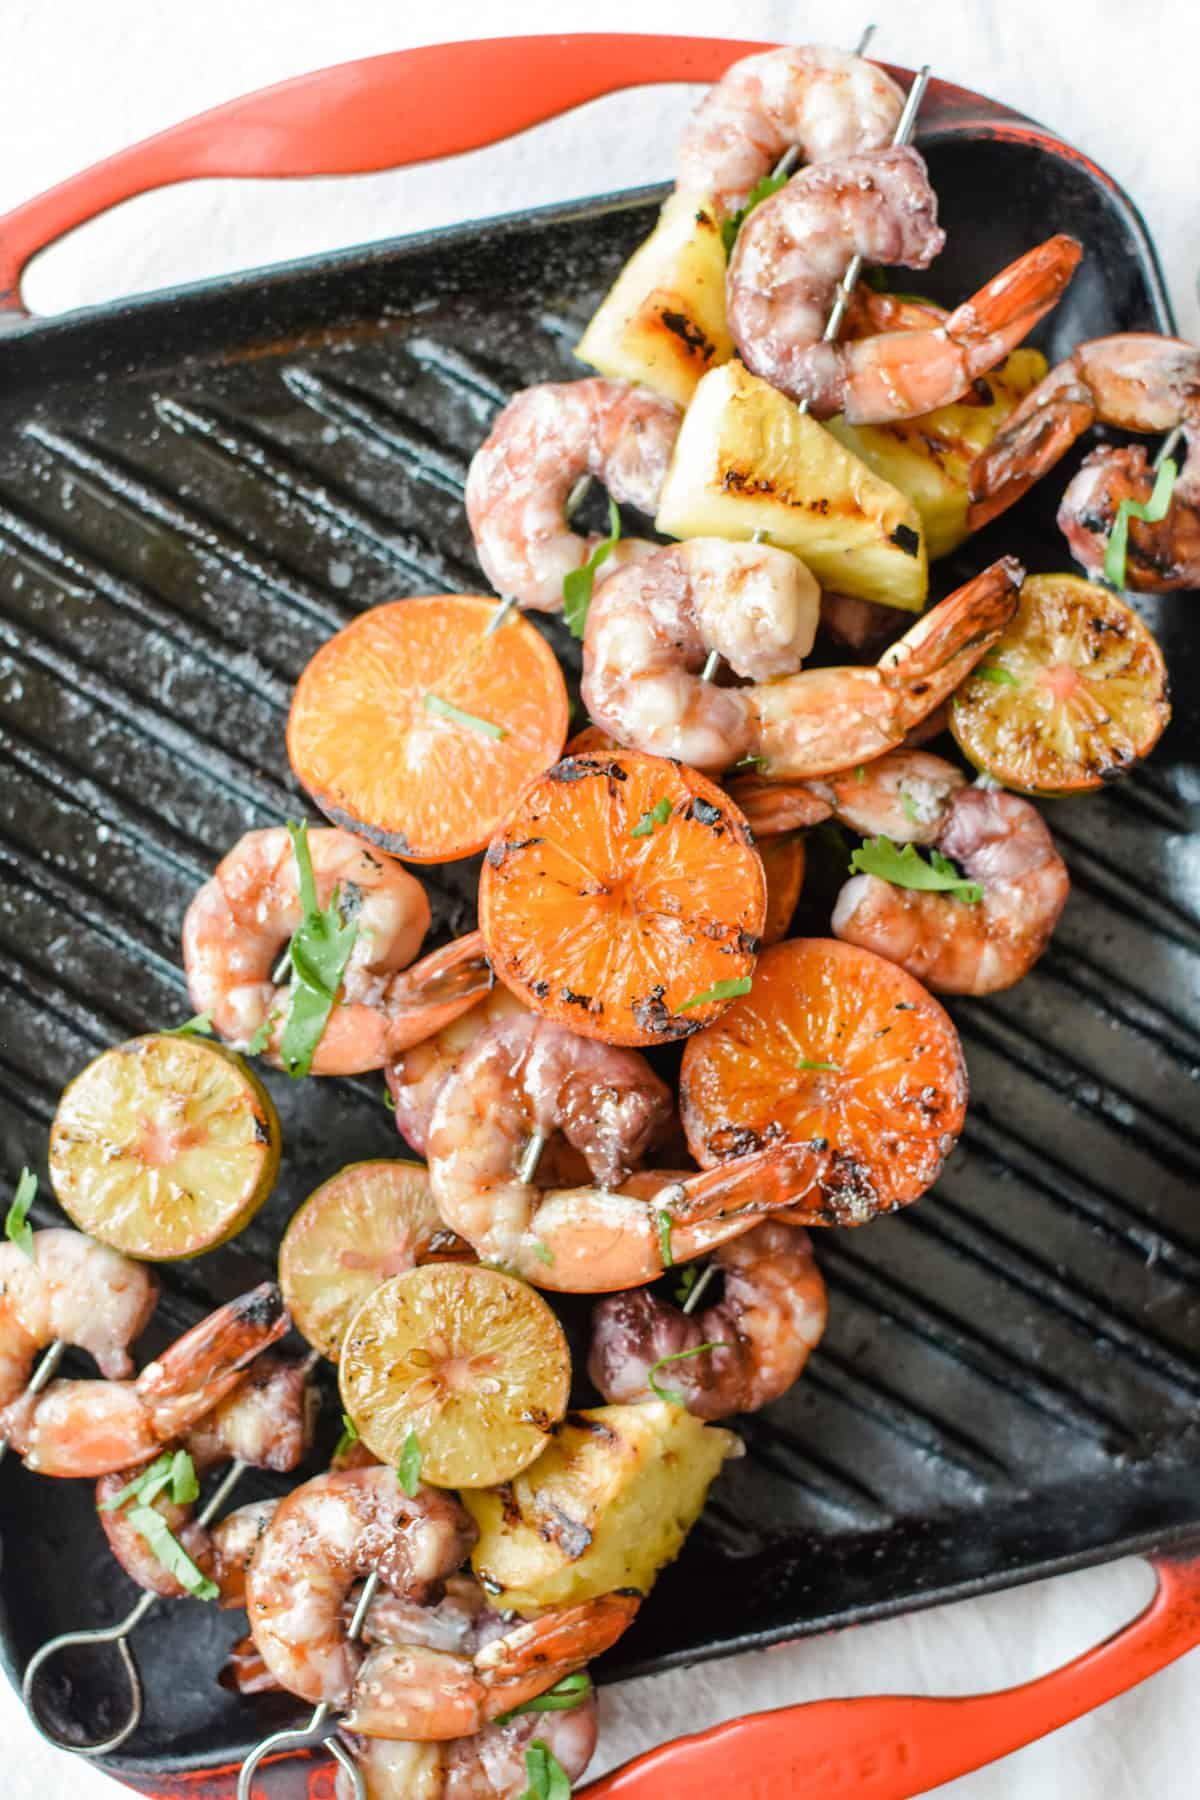 An overhead image of grilled shrimp skewers sitting on a grill pan with red edges.